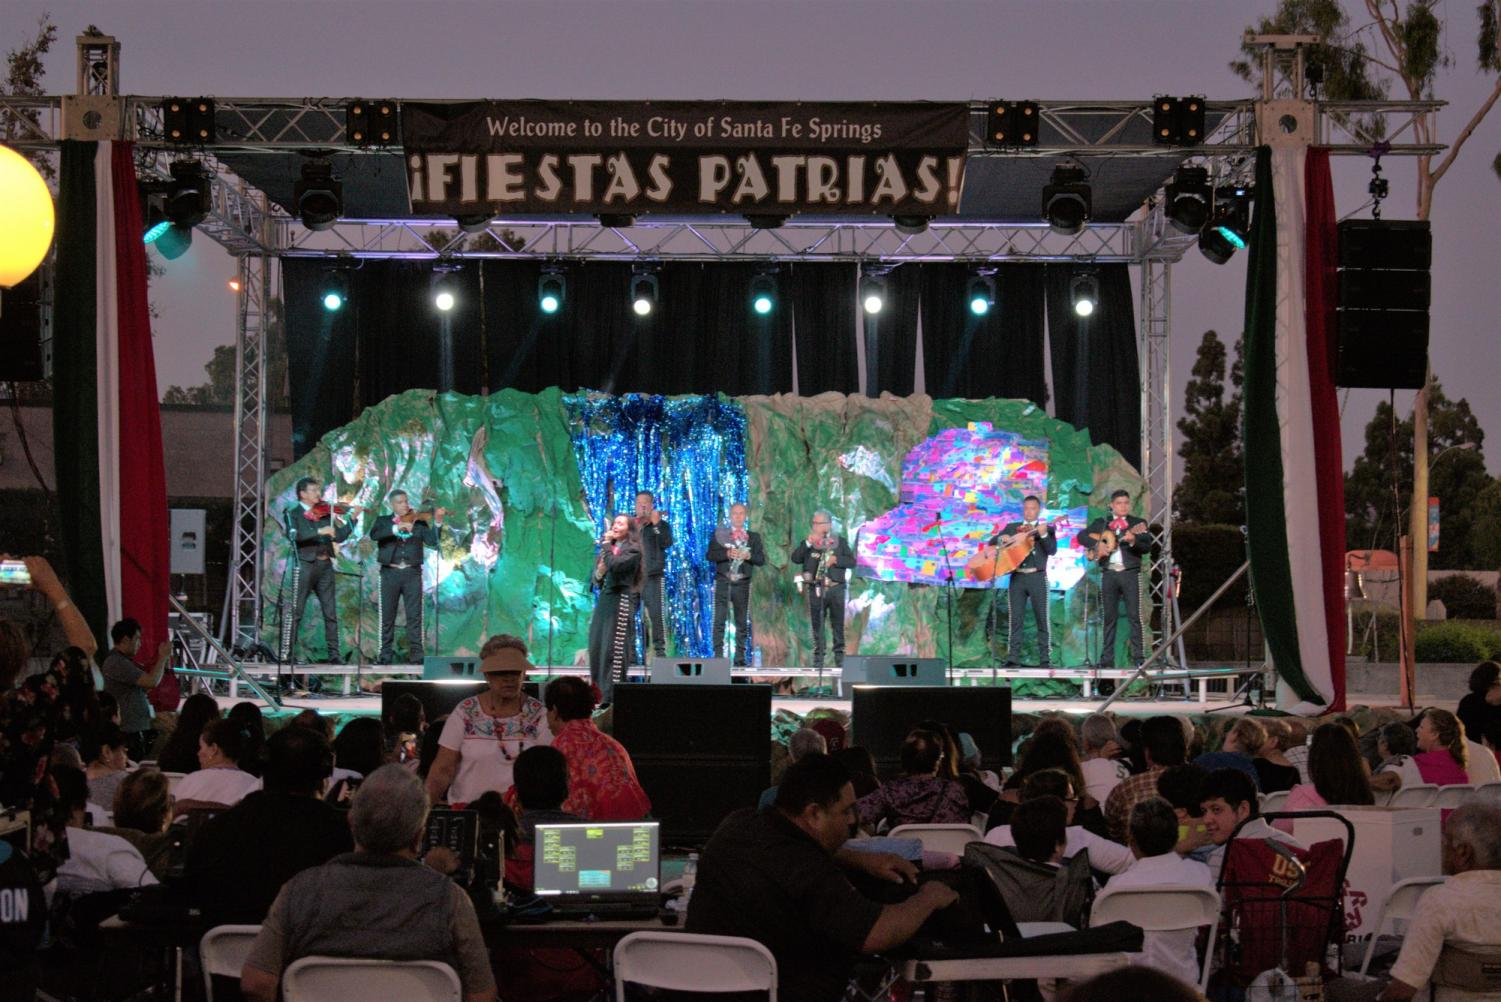 As+Fiesta+Patrias+opens+its+doors+to+the+public%2C+a+mariachi+band+performs+their+songs.+